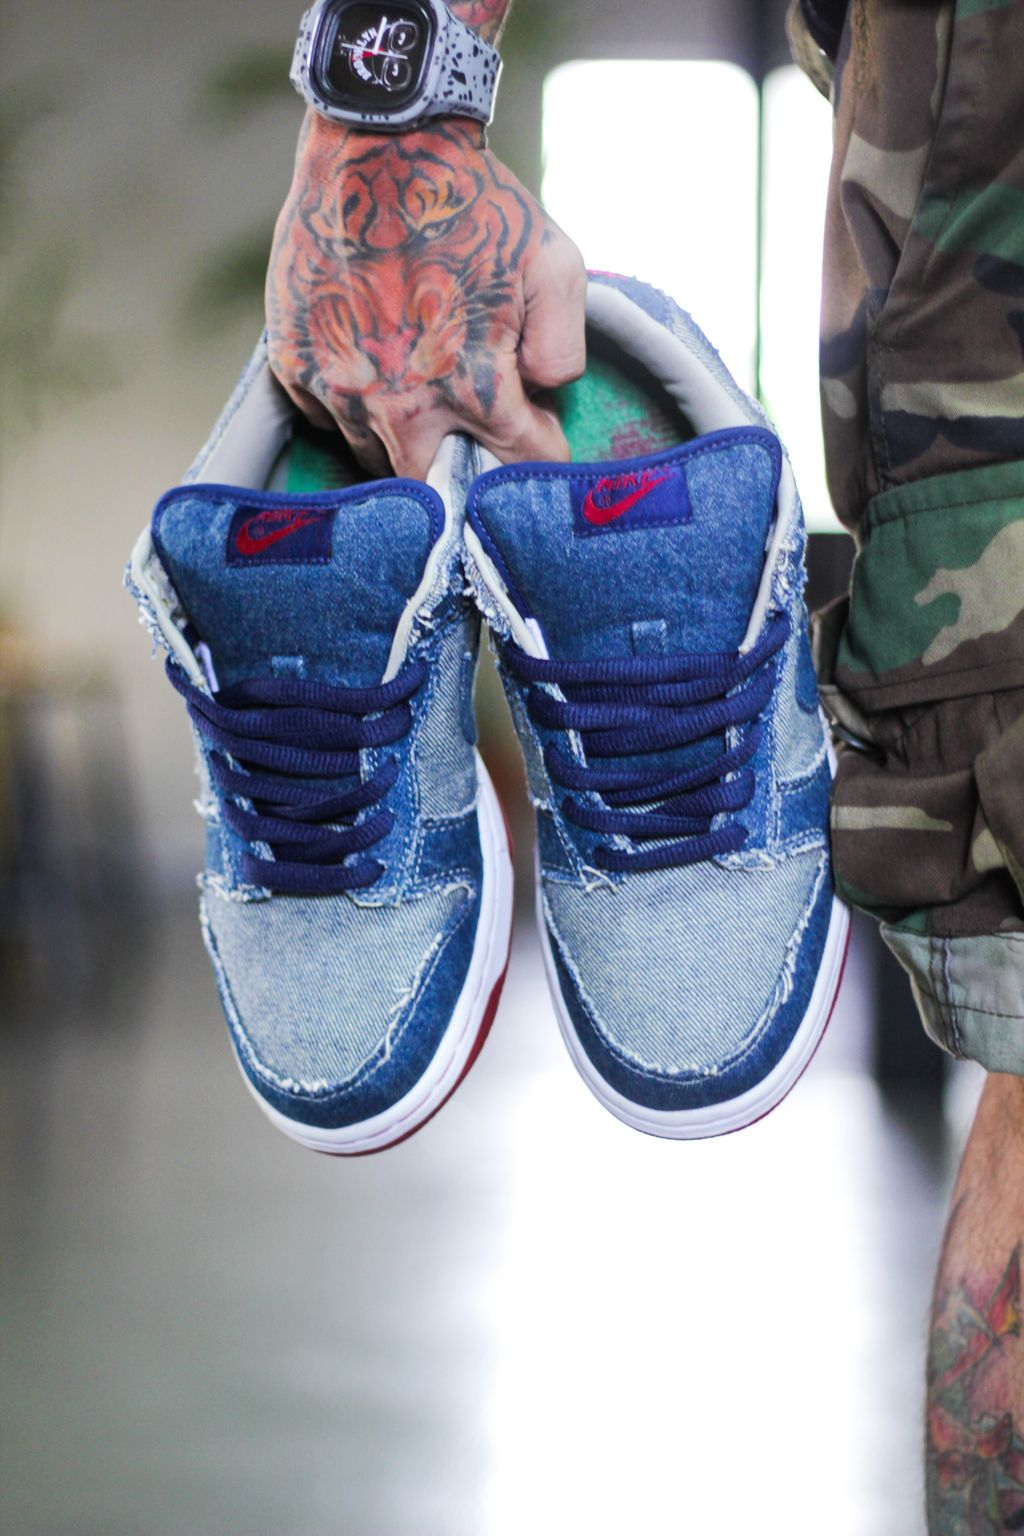 the latest ad3f2 365fc Shoeppreciation: The Nike Dunk SB Reese Forbes Denims | Shoephoric ...